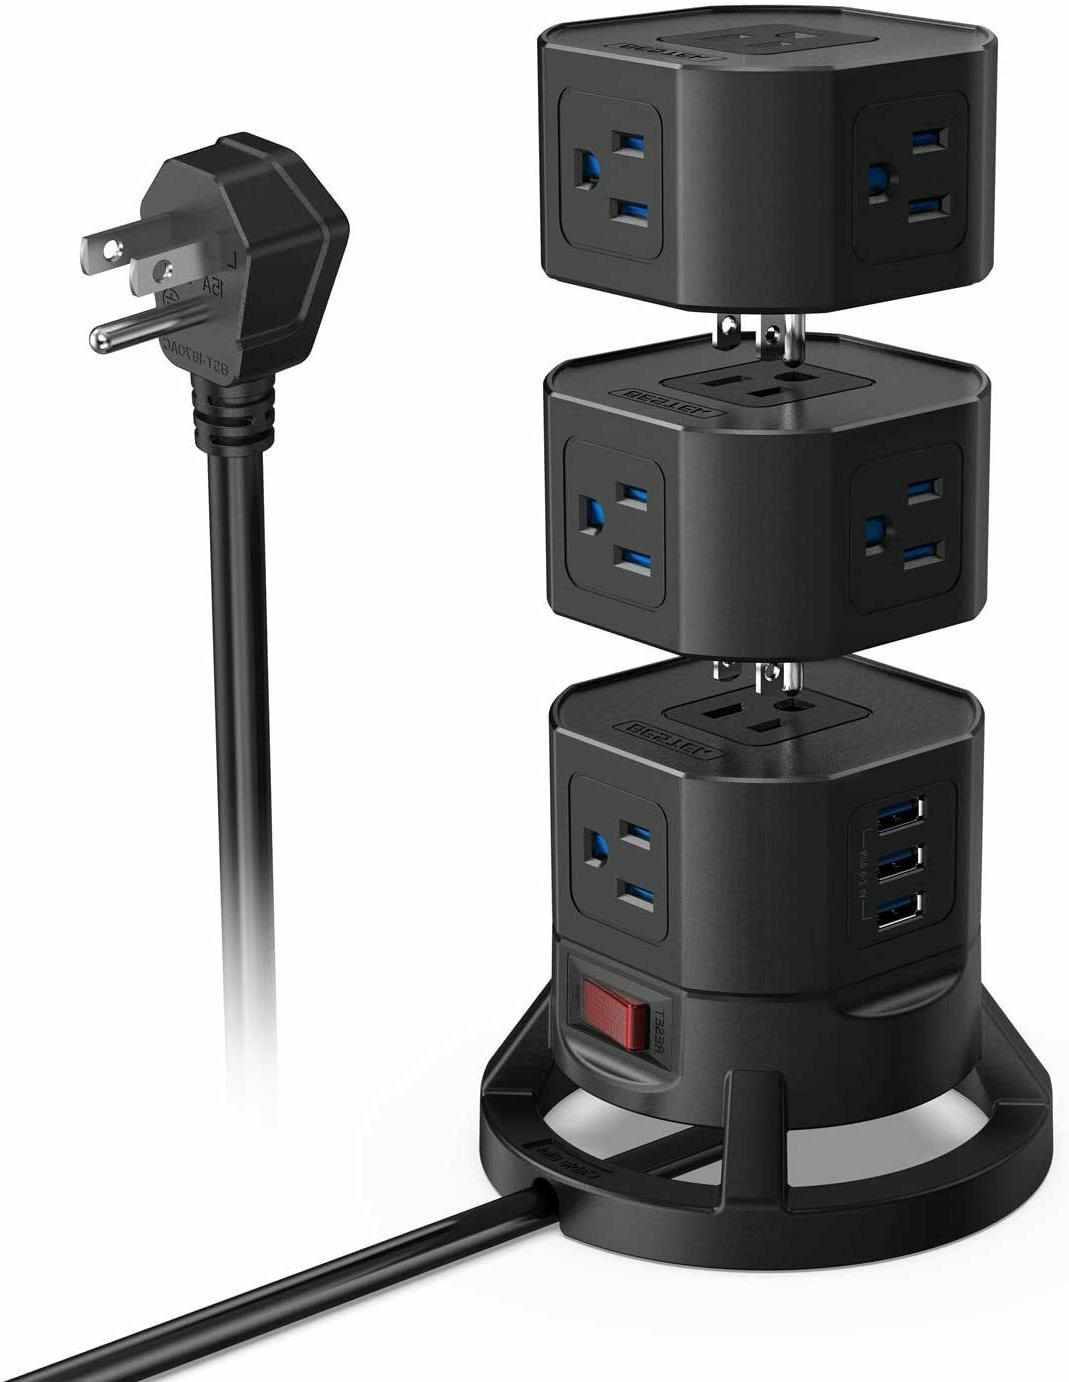 12 outlets power strip tower with 3